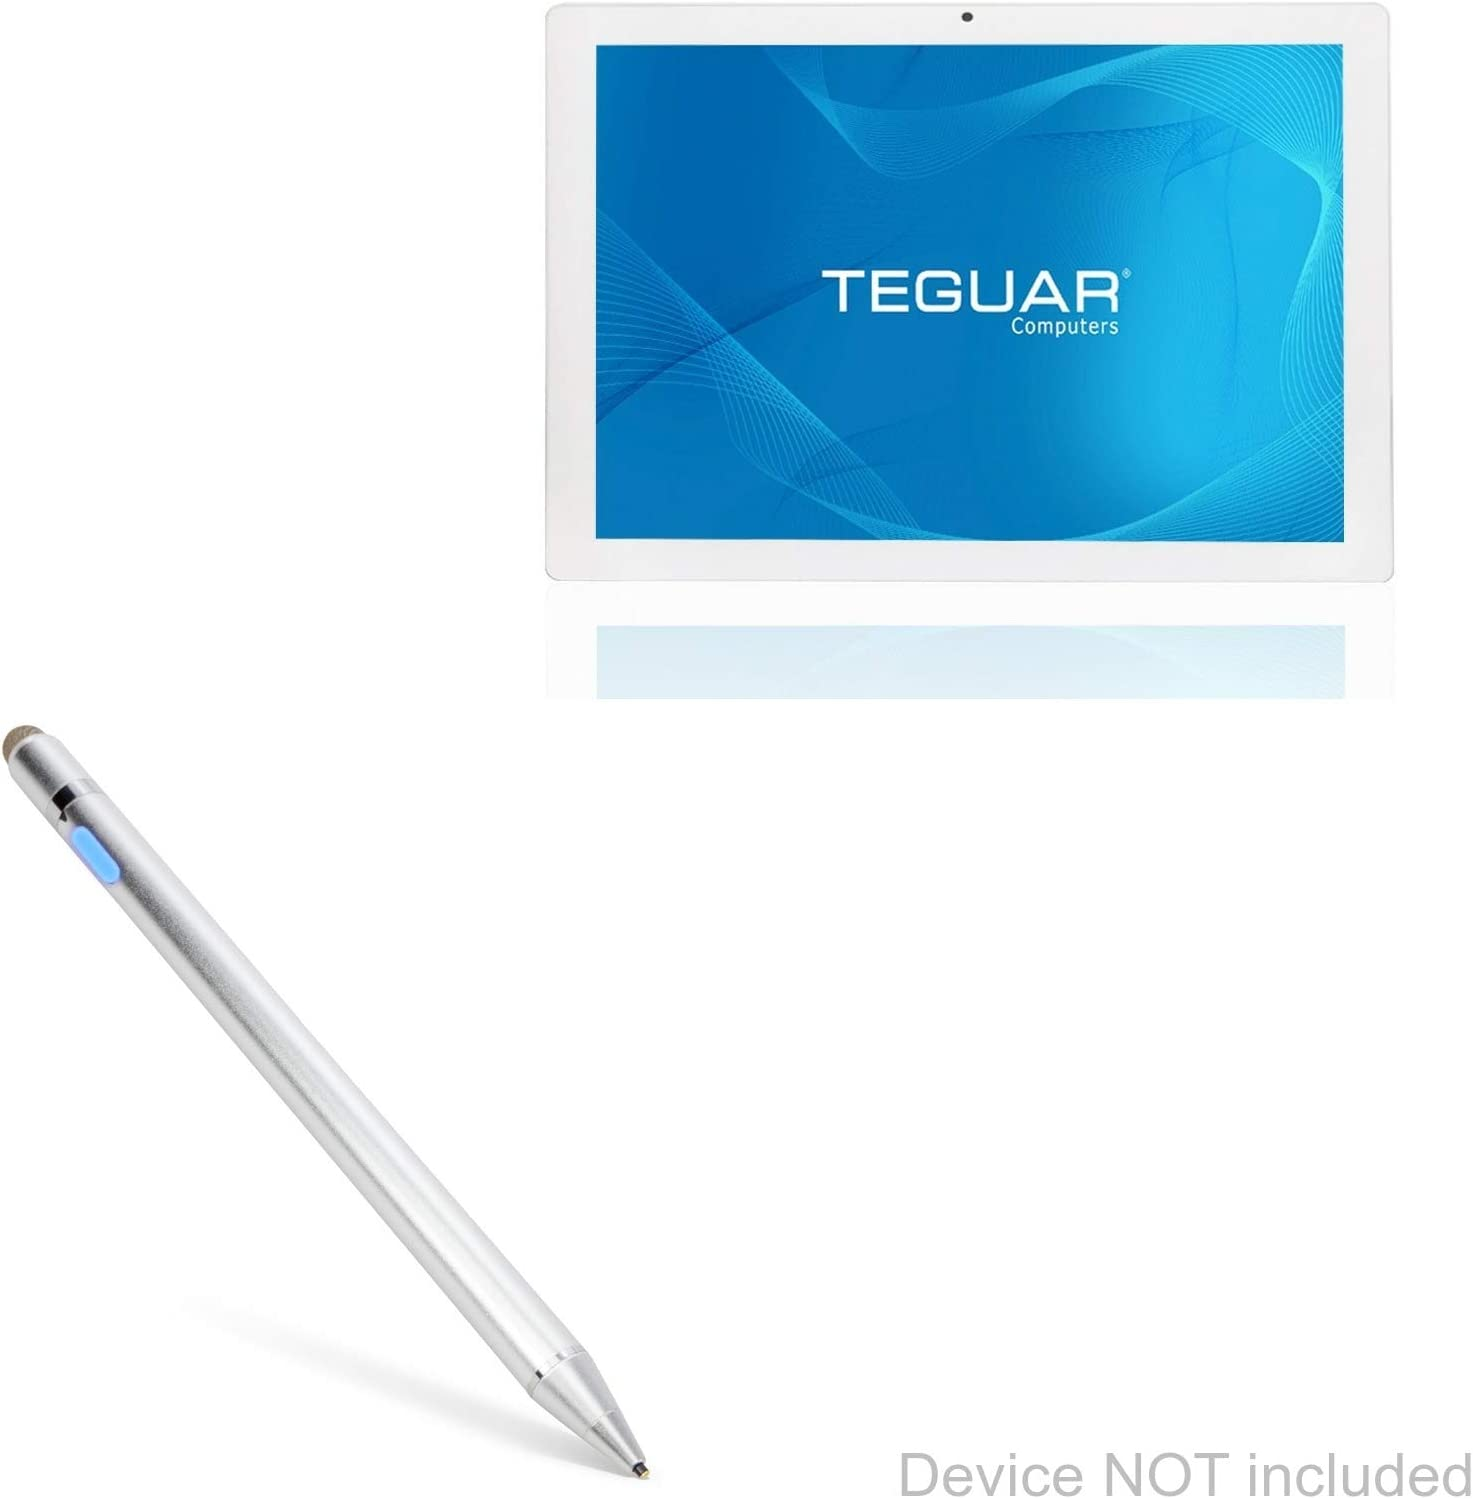 BoxWave Teguar TP-4040-22M Stylus Pen Metallic Silver Electronic Stylus with Ultra Fine Tip for Teguar TP-4040-22M AccuPoint Active Stylus